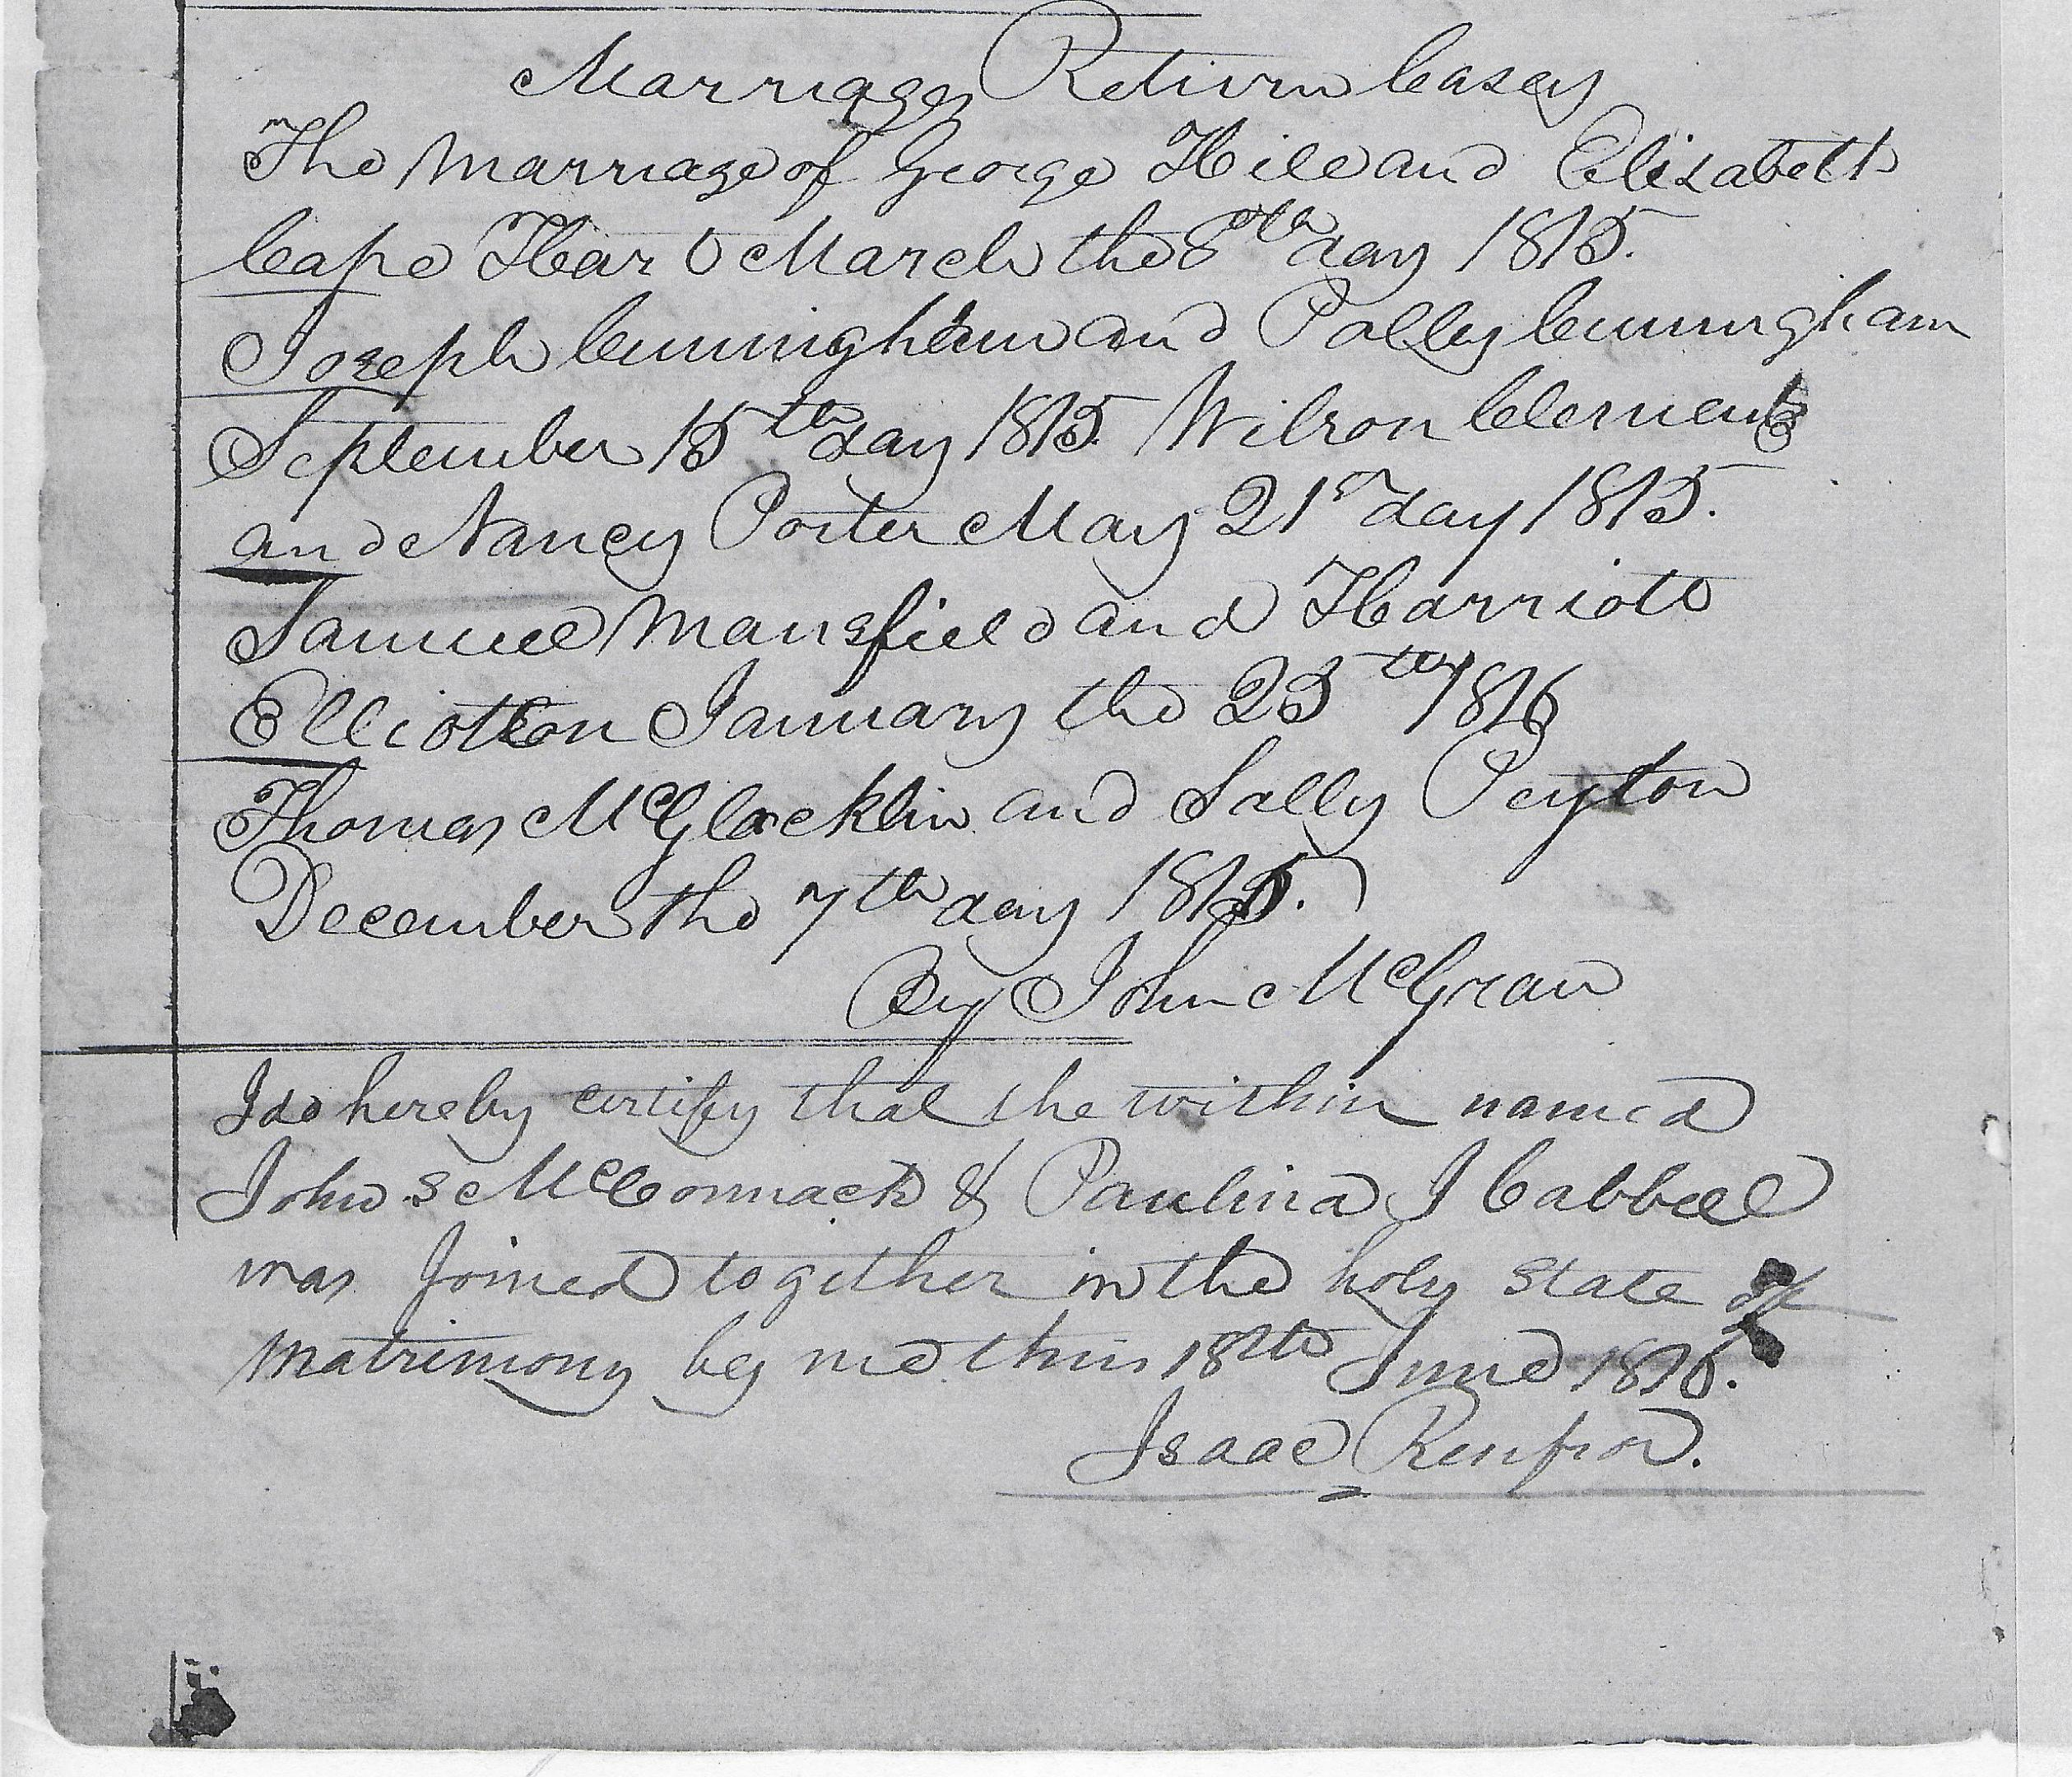 Marriage Records: Kentucky Kindred Genealogy